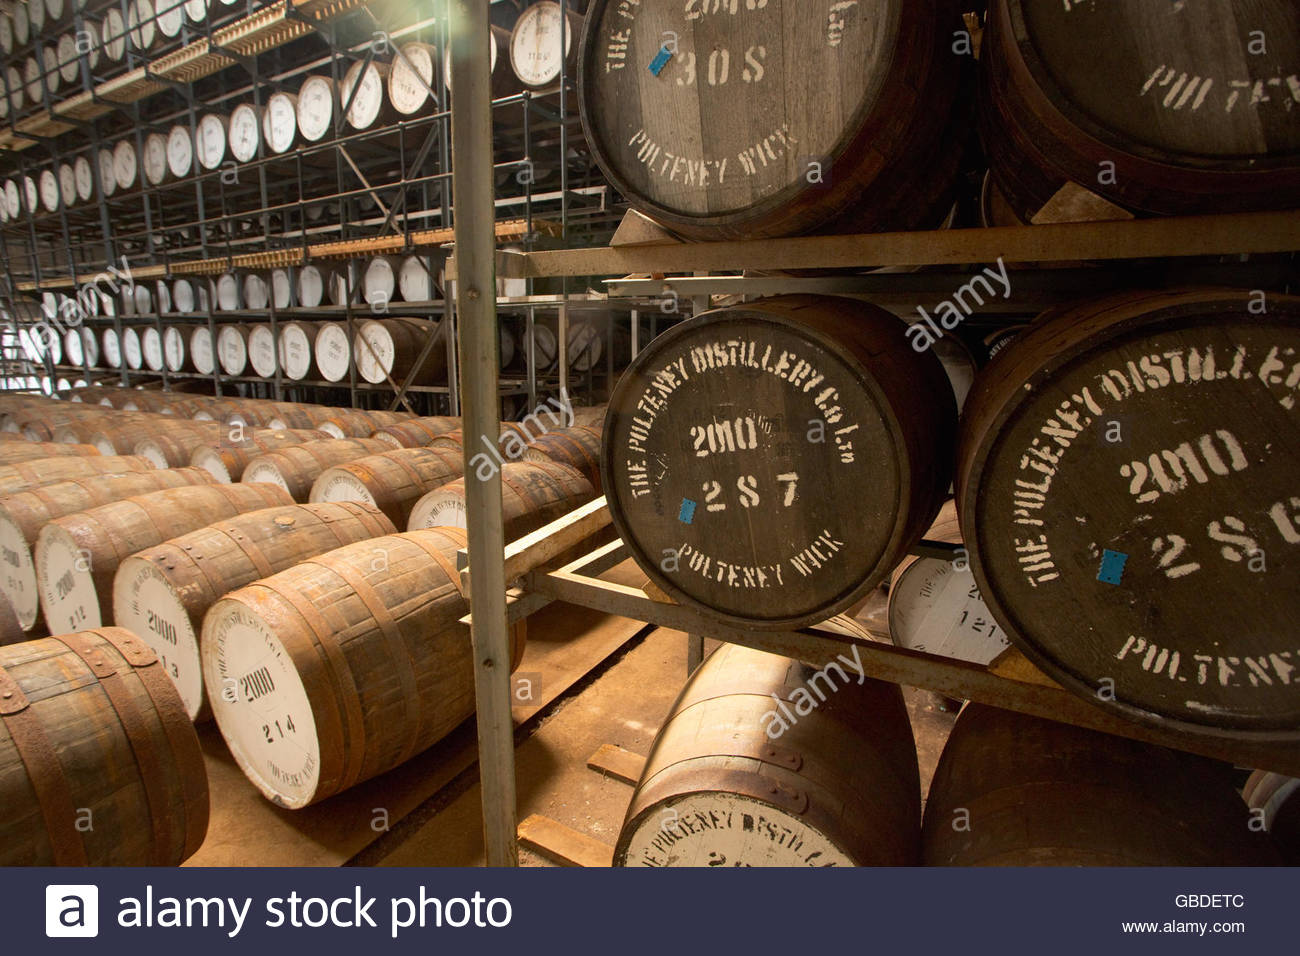 Barrels stored at the Old Pulteney Distillery, Wick, Caithness, Highlands of Scotland. - Stock Image